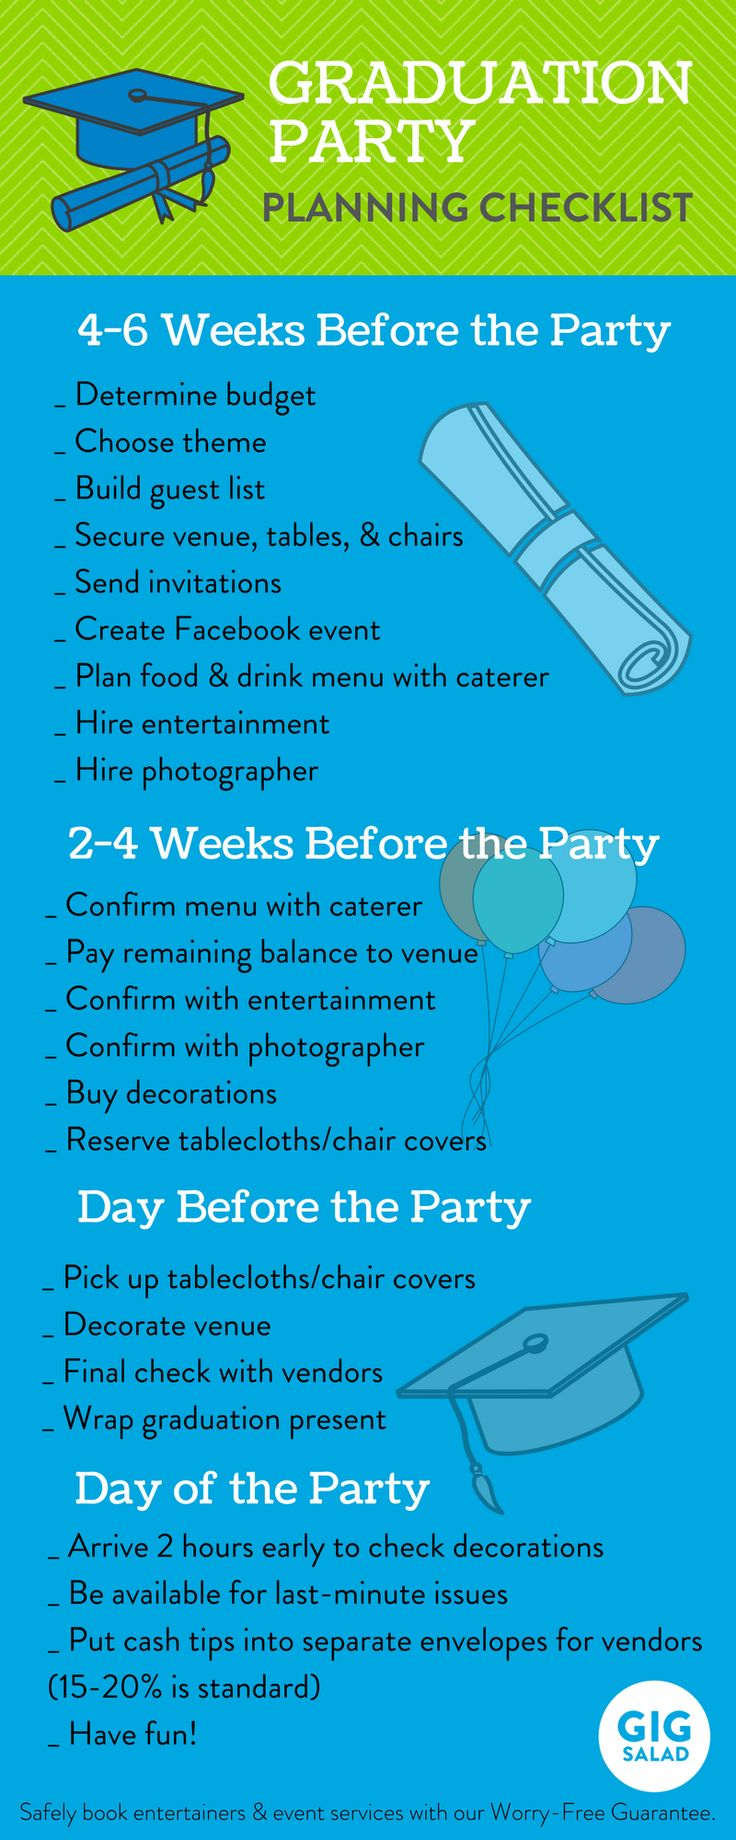 graduation party checklist template - 25 best ideas about graduation invitations on pinterest